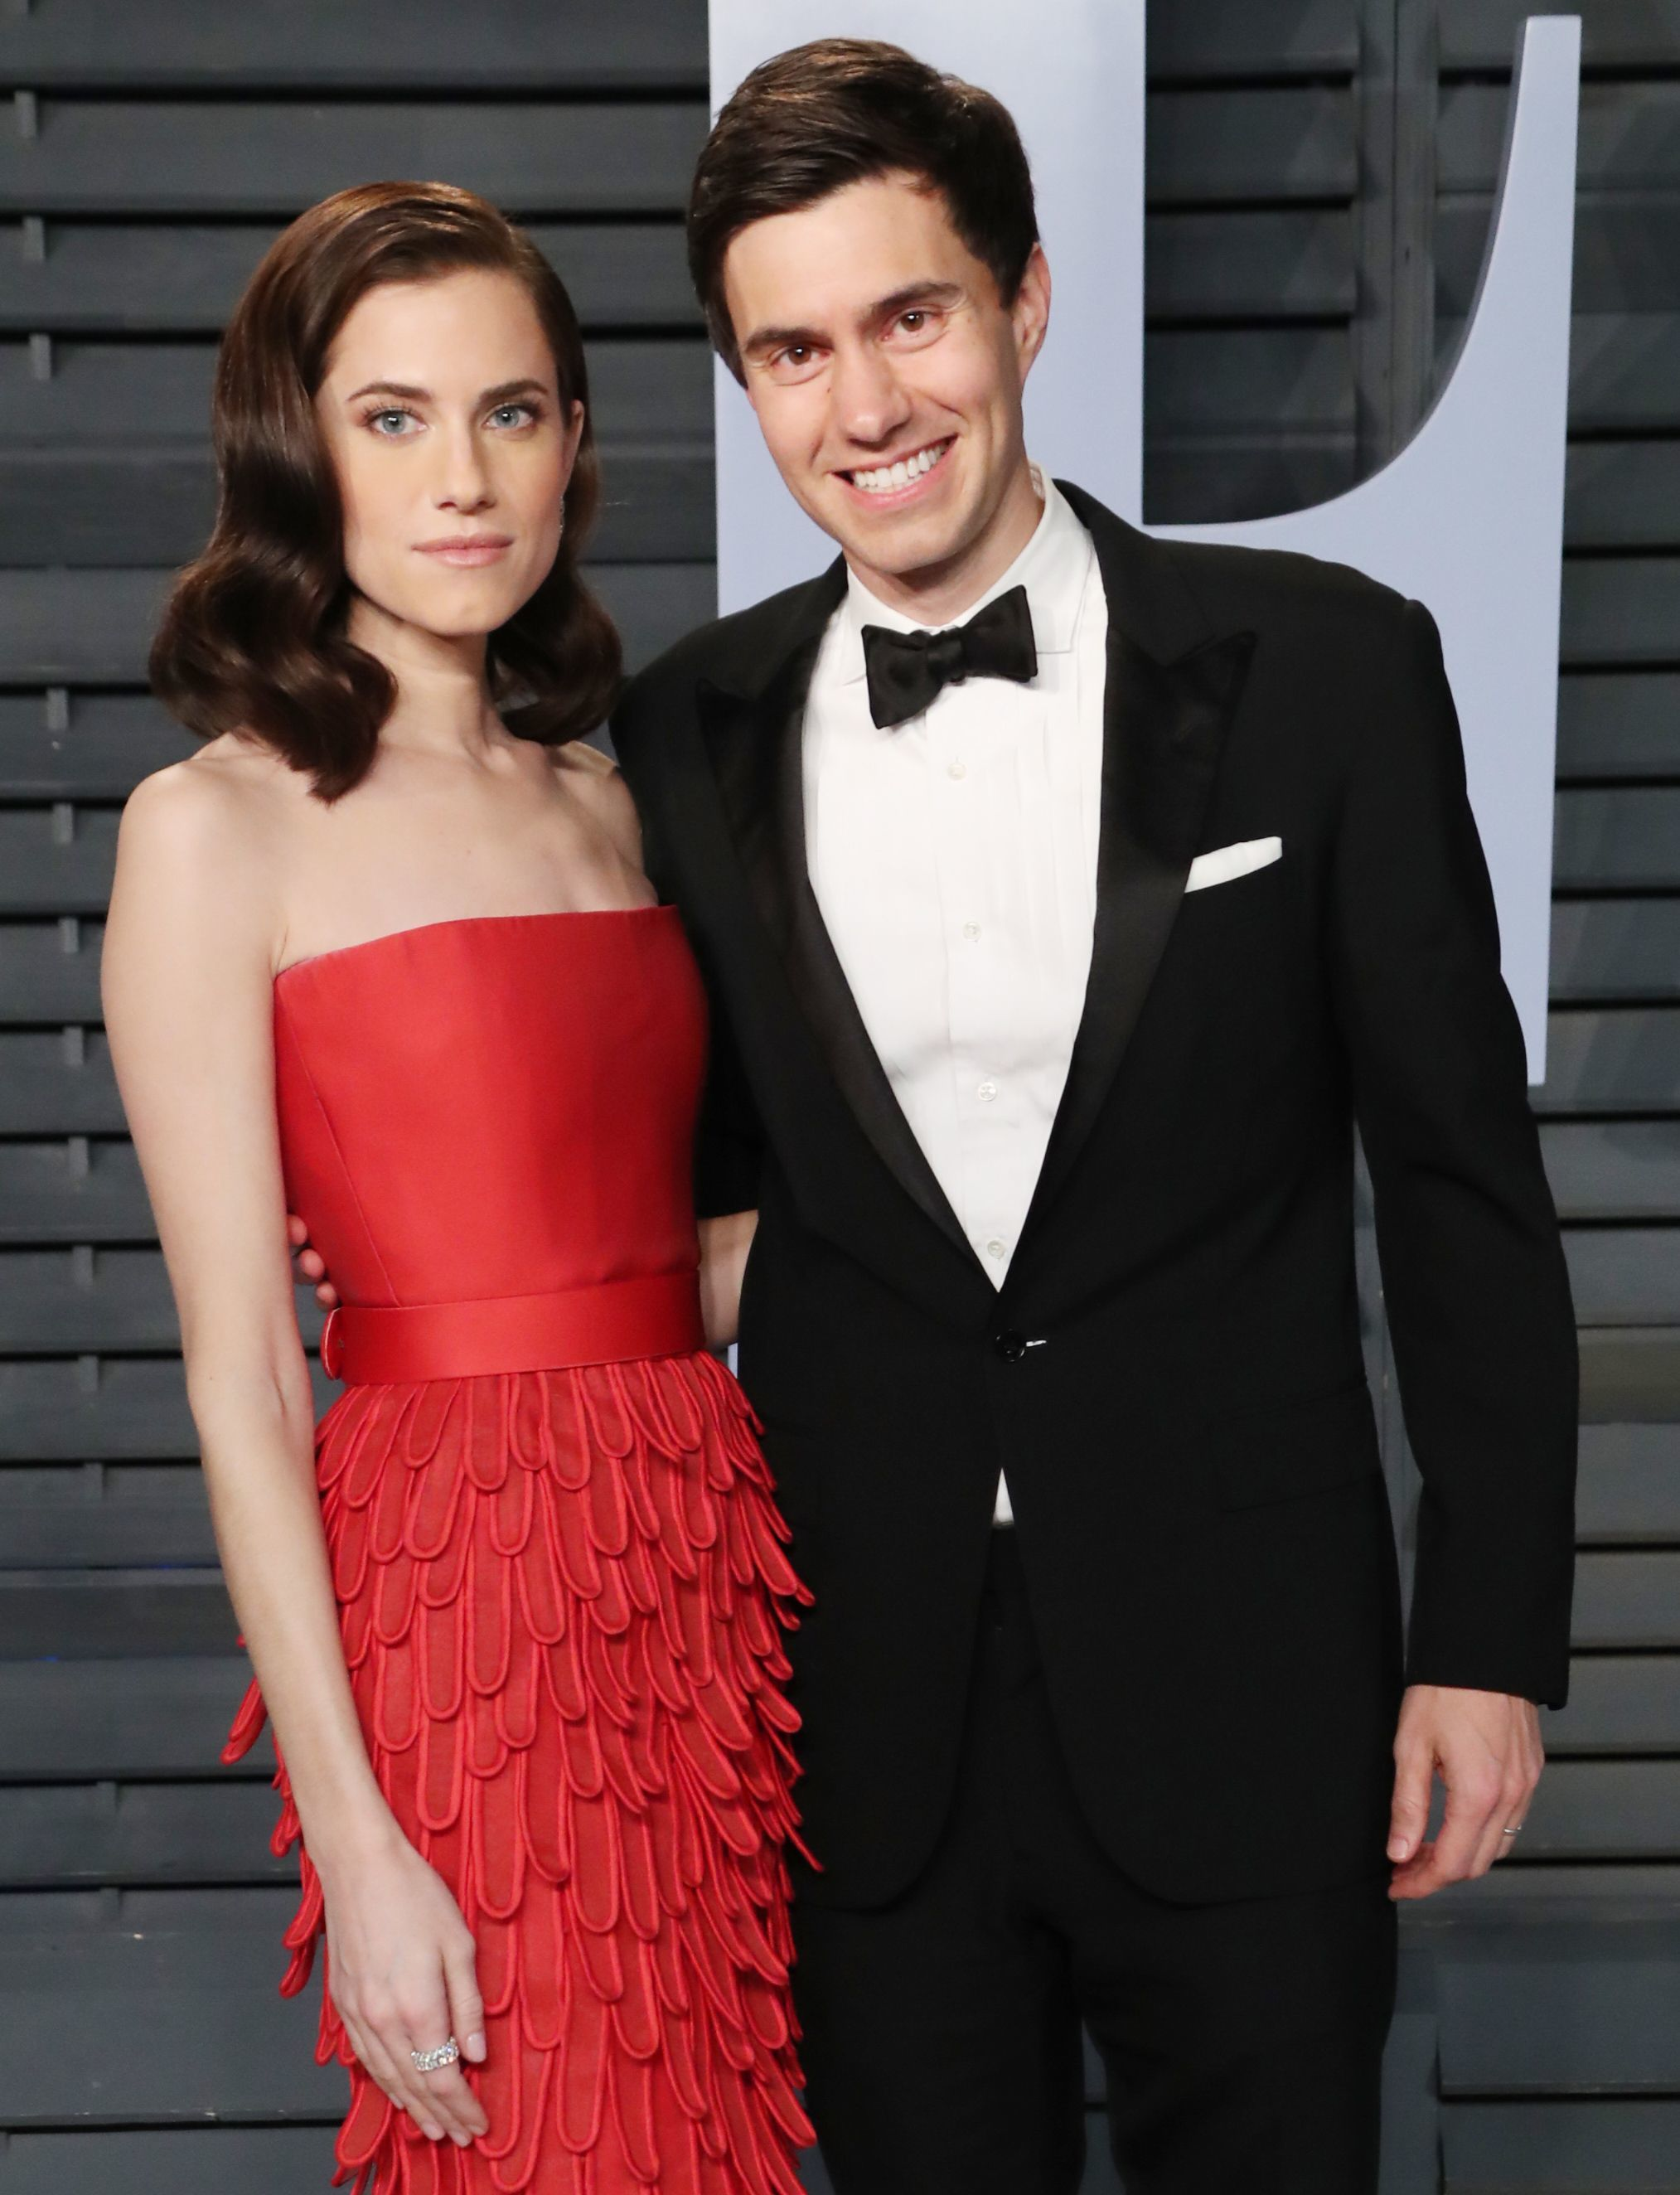 Allison Williams and Ricky Van Veen arrive at the Vanity Fair Oscar Party in Beverly Hills on March 4, 2018.